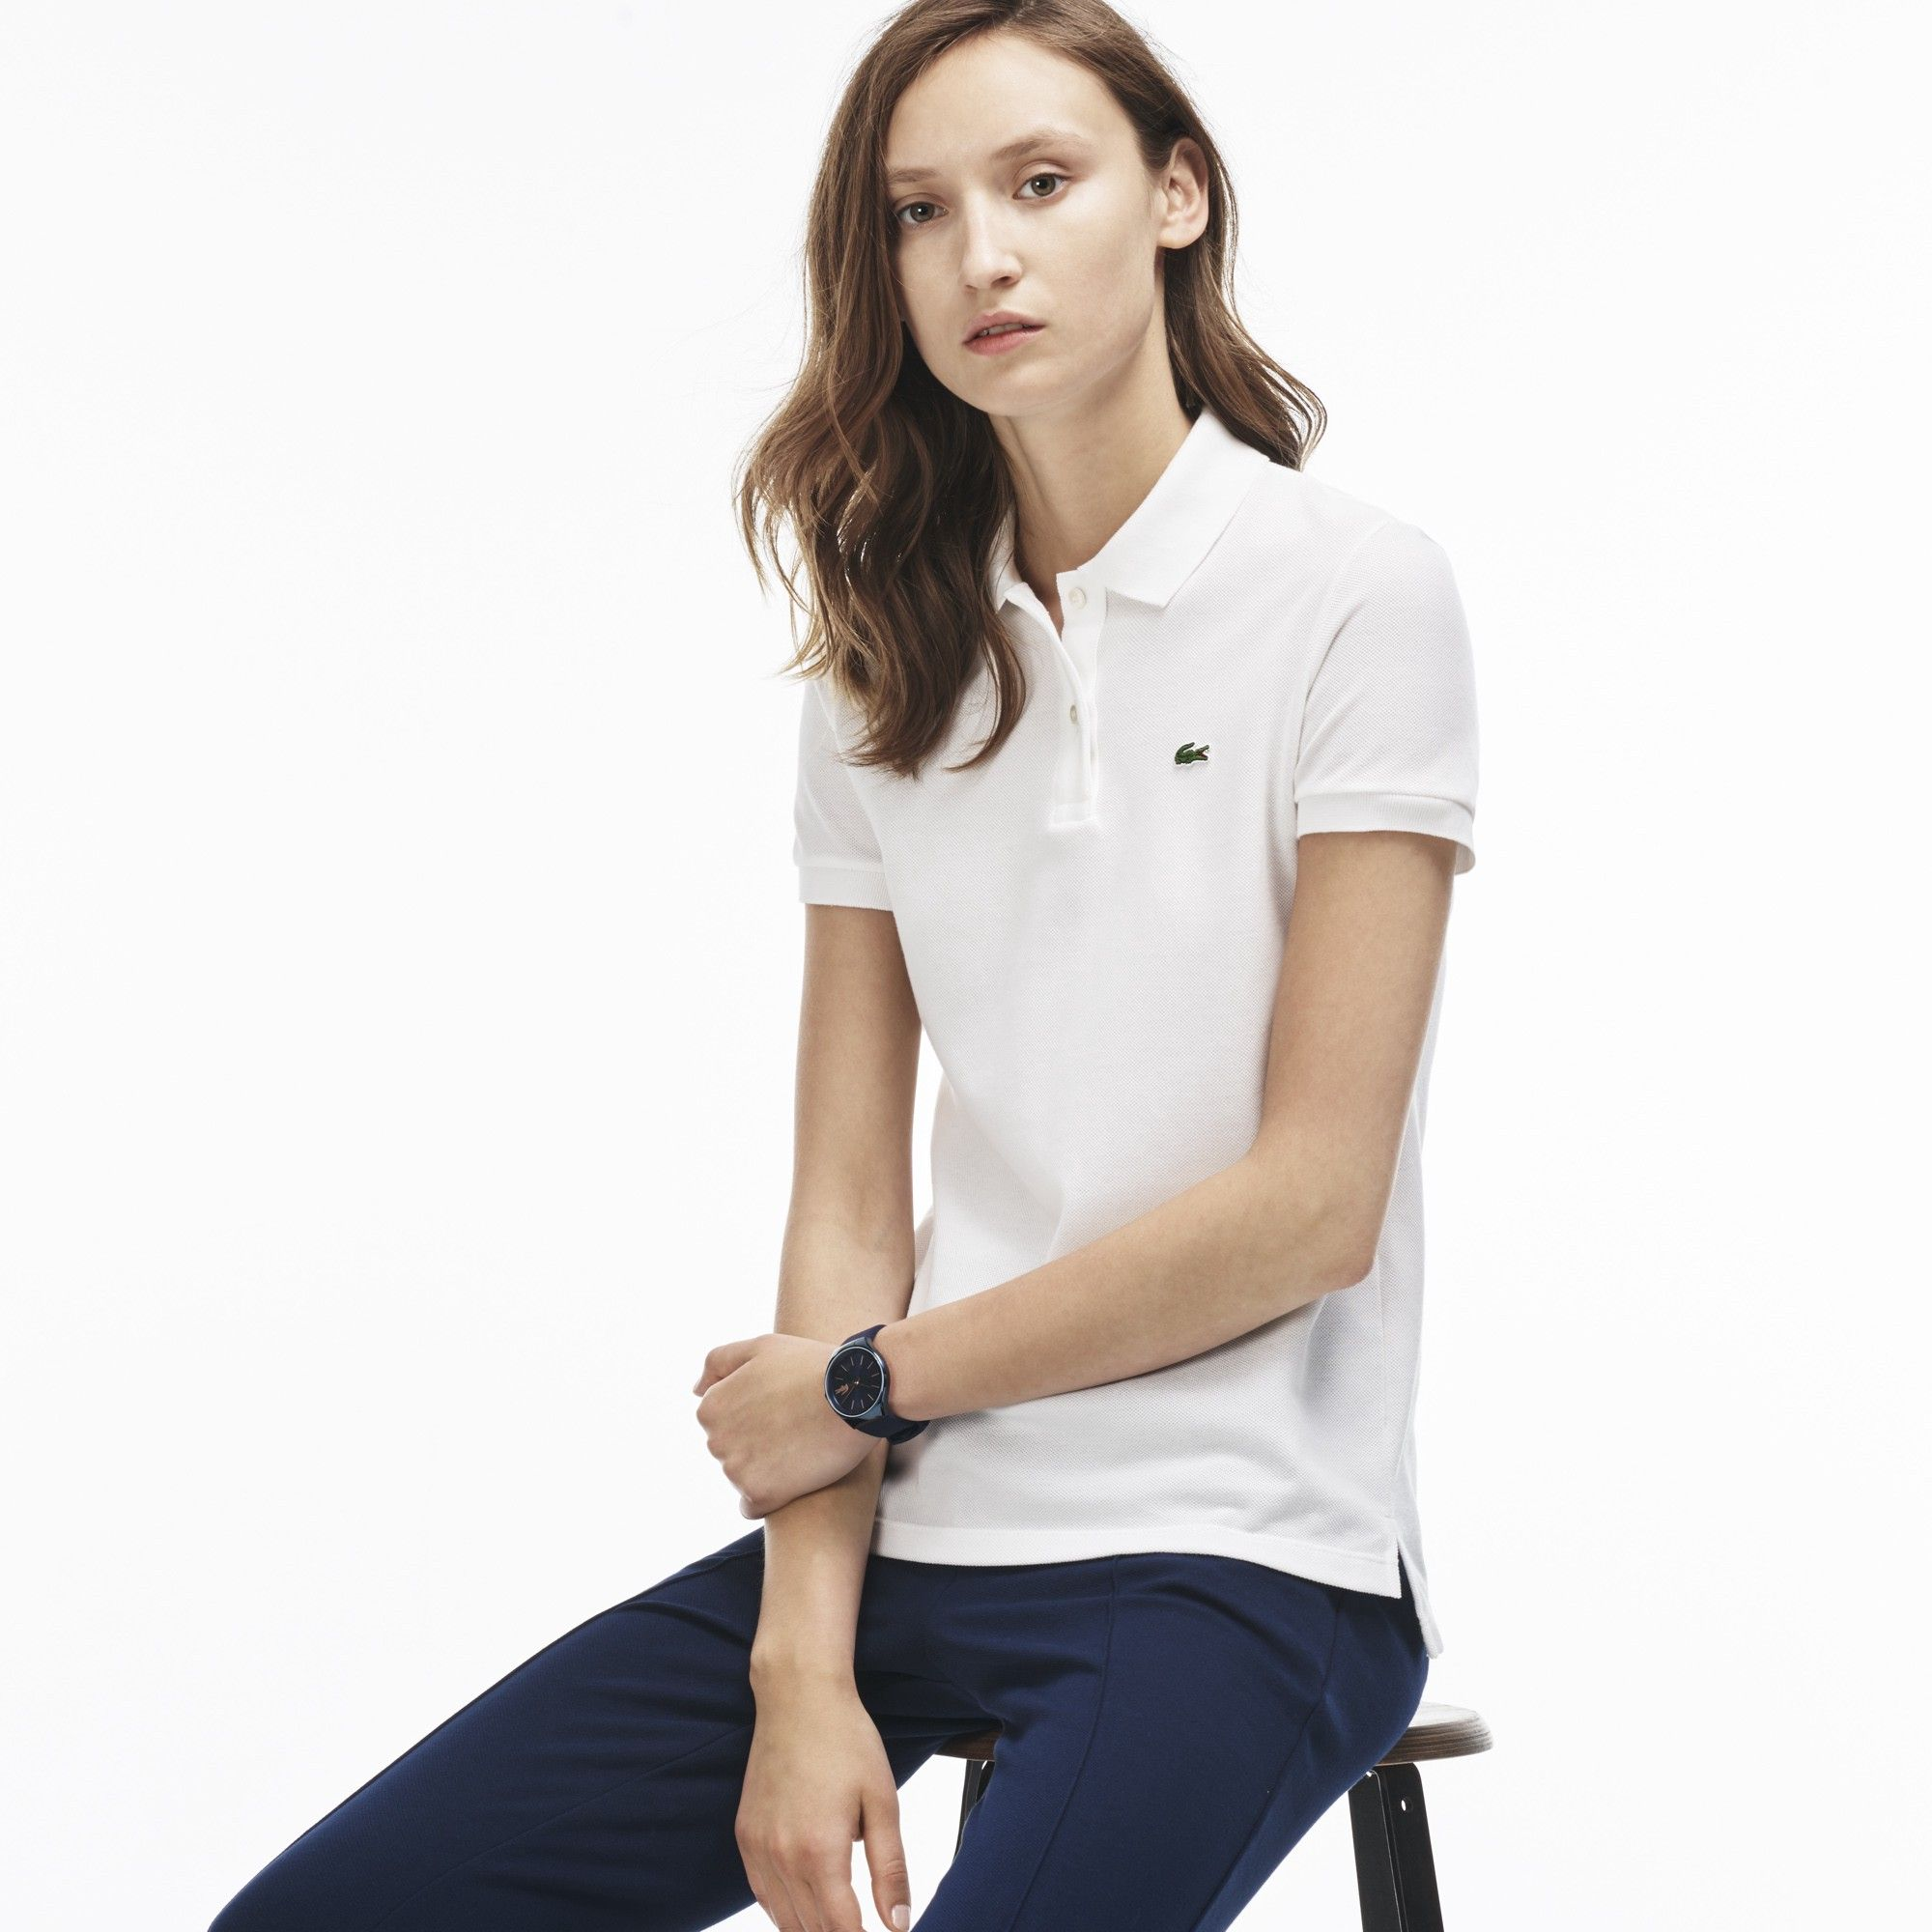 67e2a294 LACOSTE Women's Classic Fit Piqué Polo Shirt - white. #lacoste #cloth #